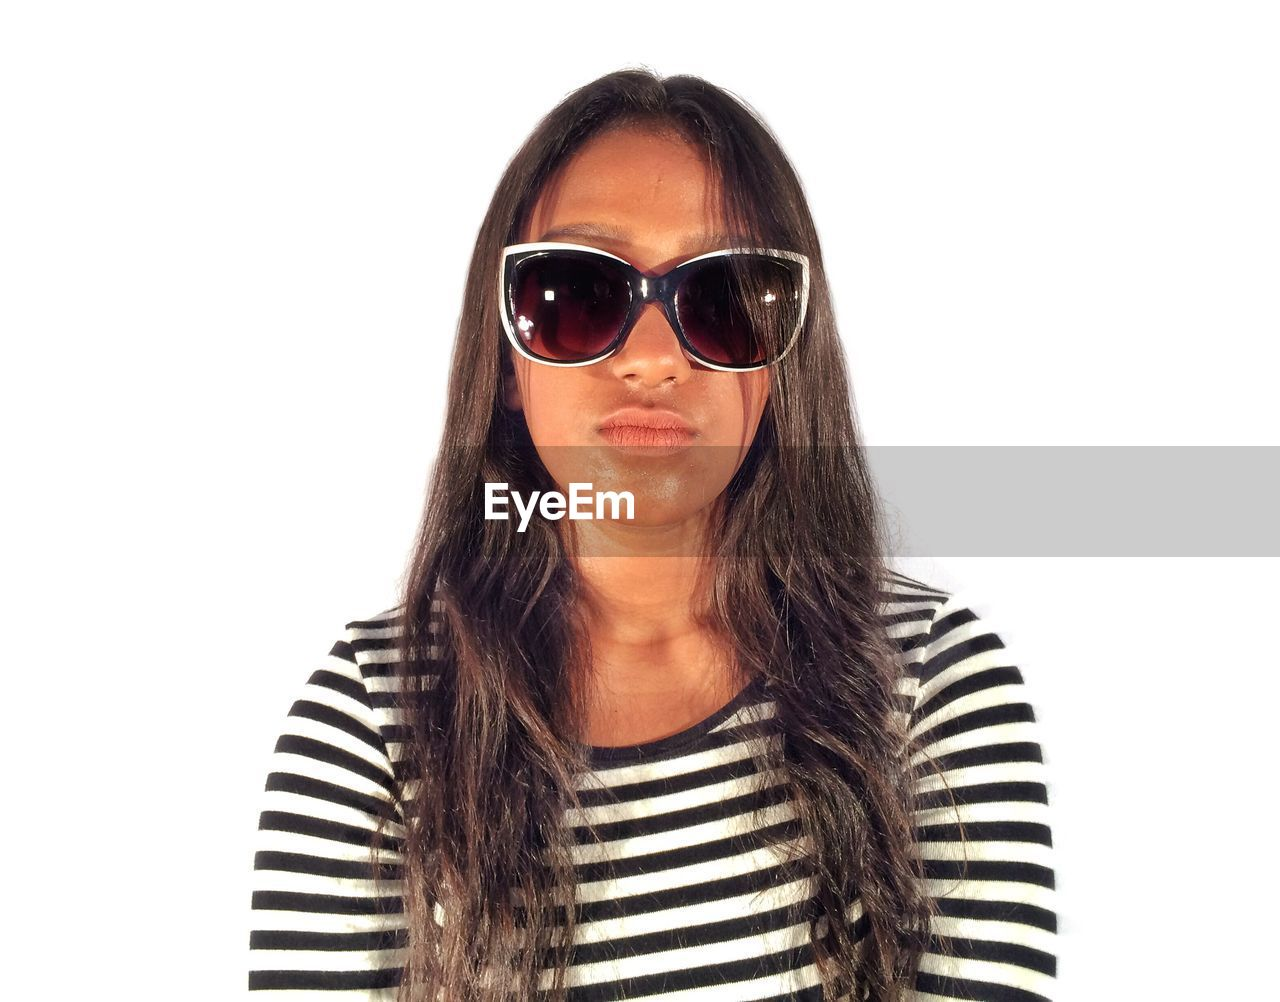 Portrait of woman wearing sunglasses against white background